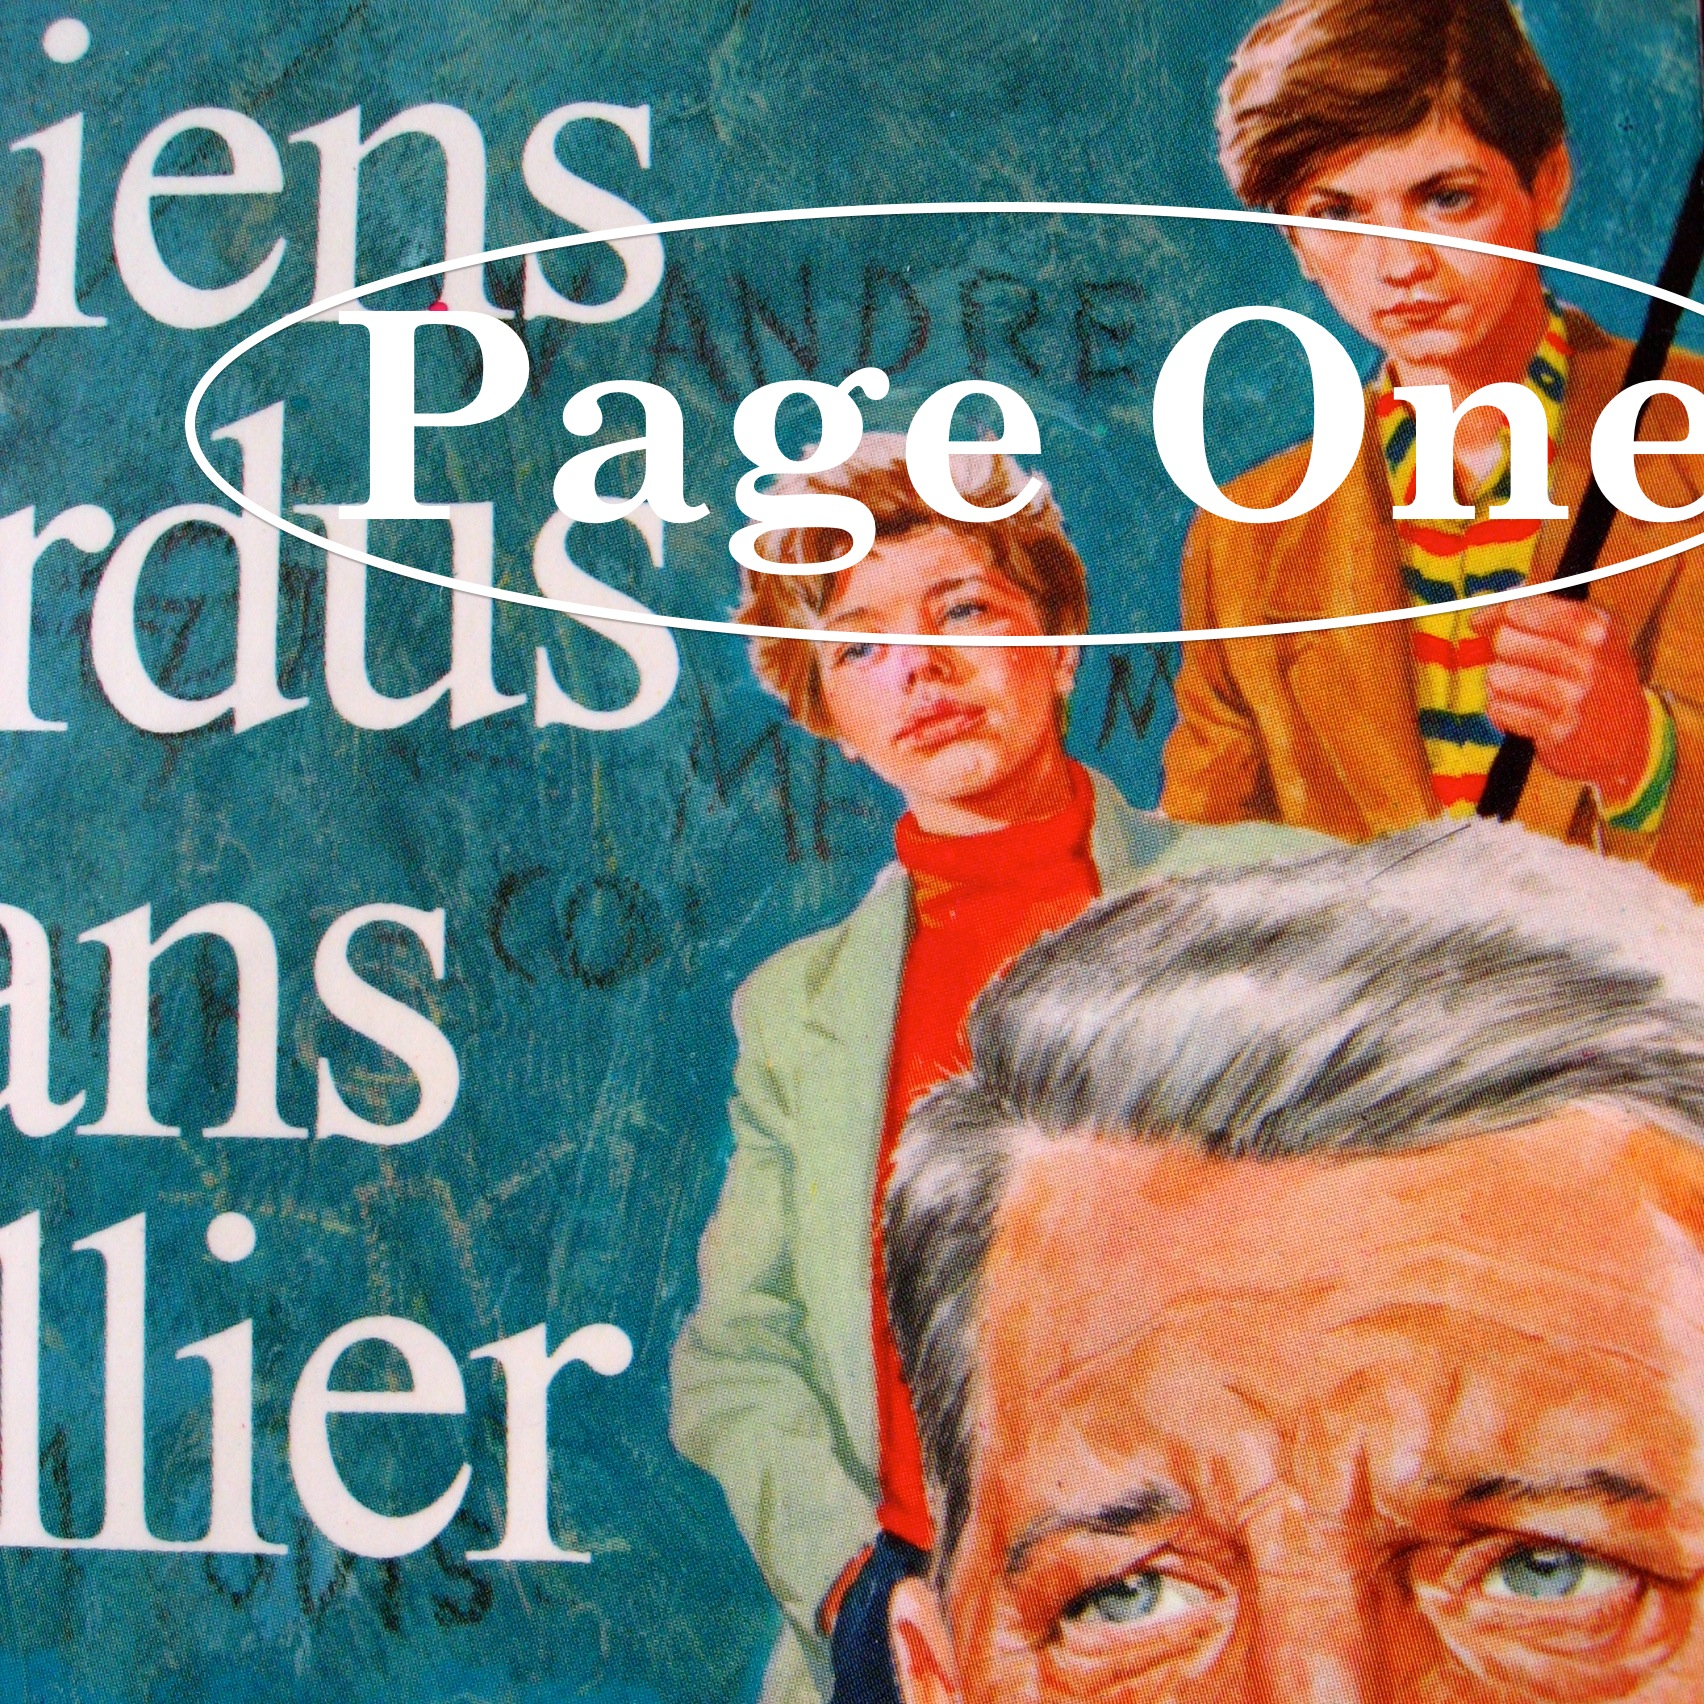 Episode image is a detail from the cover of Chiens Perdus Sans Collier by Gilbert Cesbrun, published in 1954 by Éditions J'ai Lu; cover illustration is by G. Benvenuti based on stills from the Pathé film.